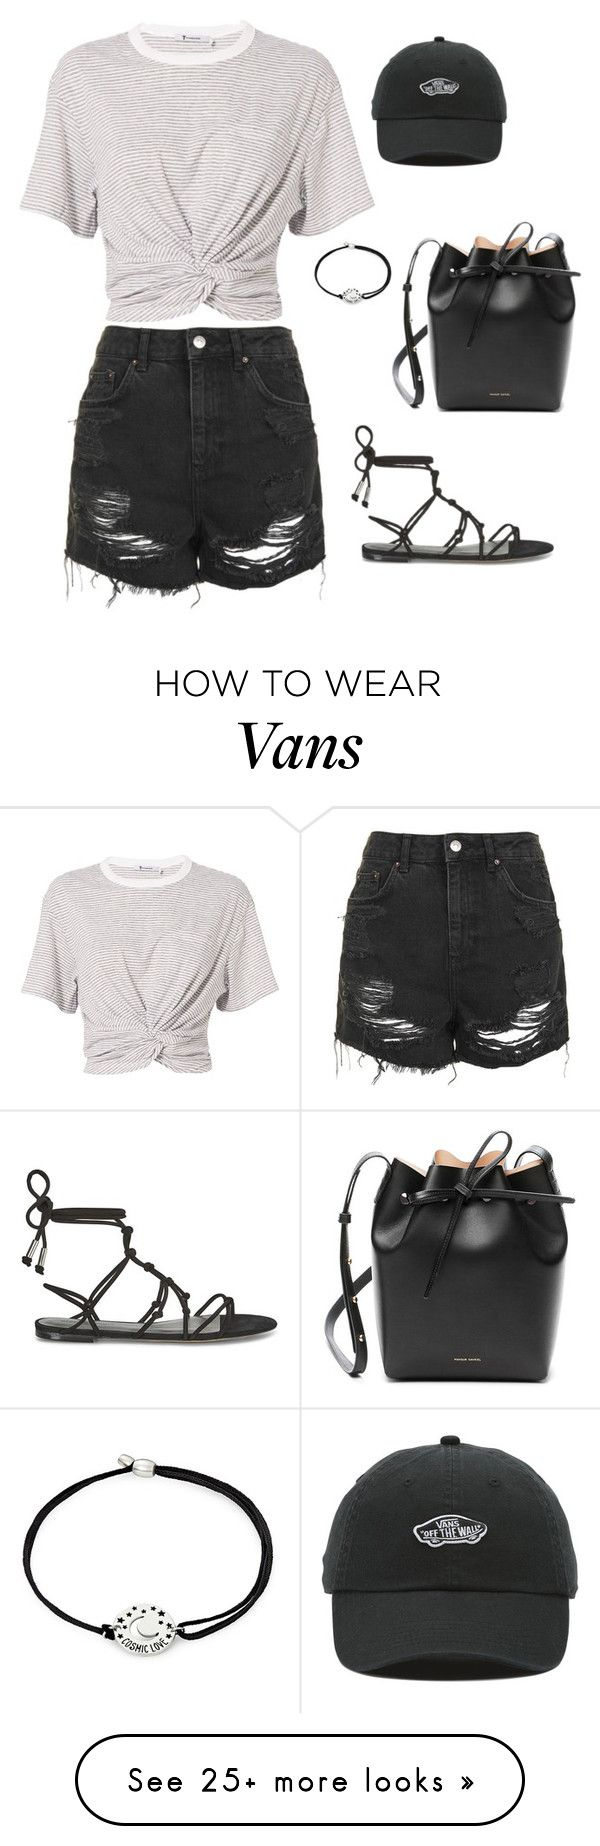 """Unbenannt #475"" by sina5439 on Polyvore featuring T By Alexander Wang, Topshop, Rebecca Minkoff, Alex and Ani, Vans and Mansur Gavriel"